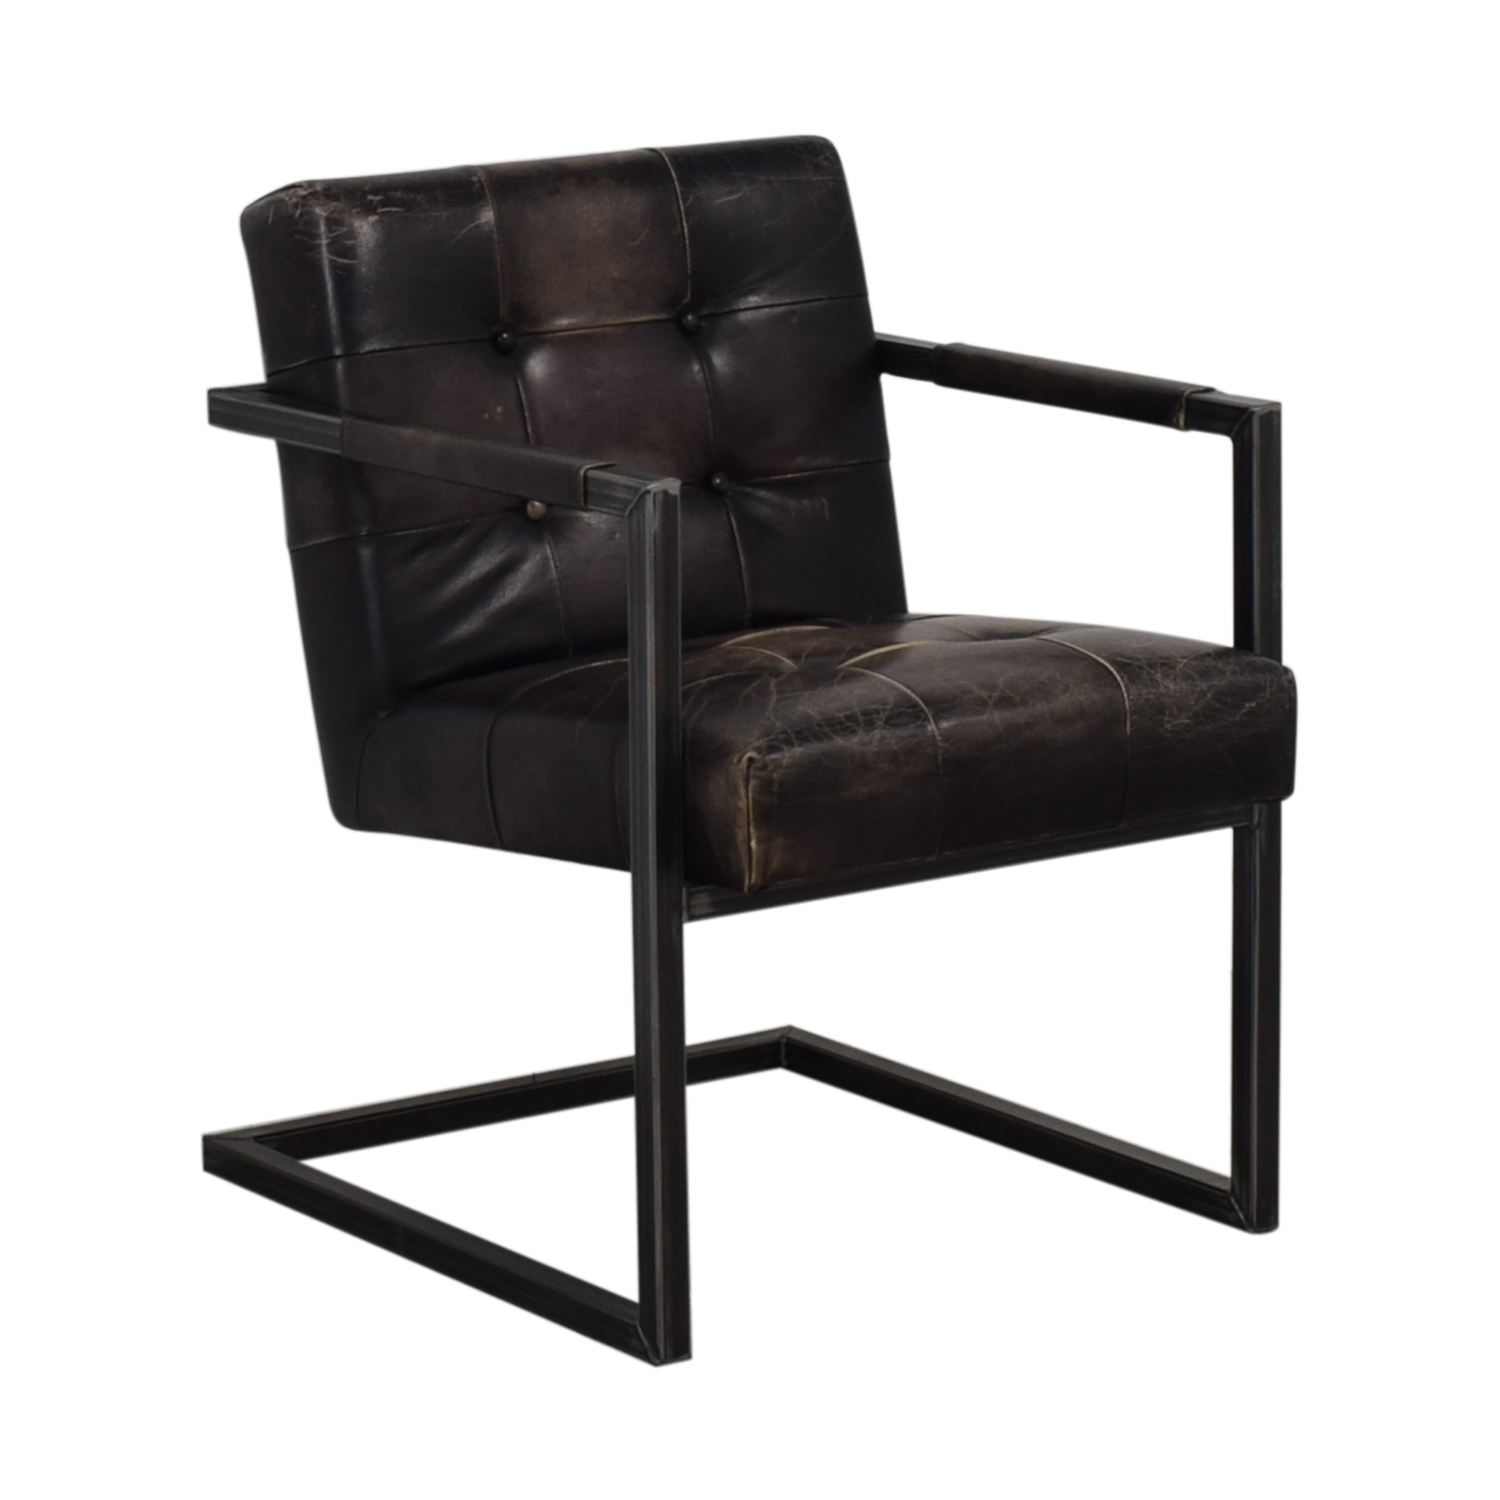 Olde Good Things Vintage Leather Chair discount